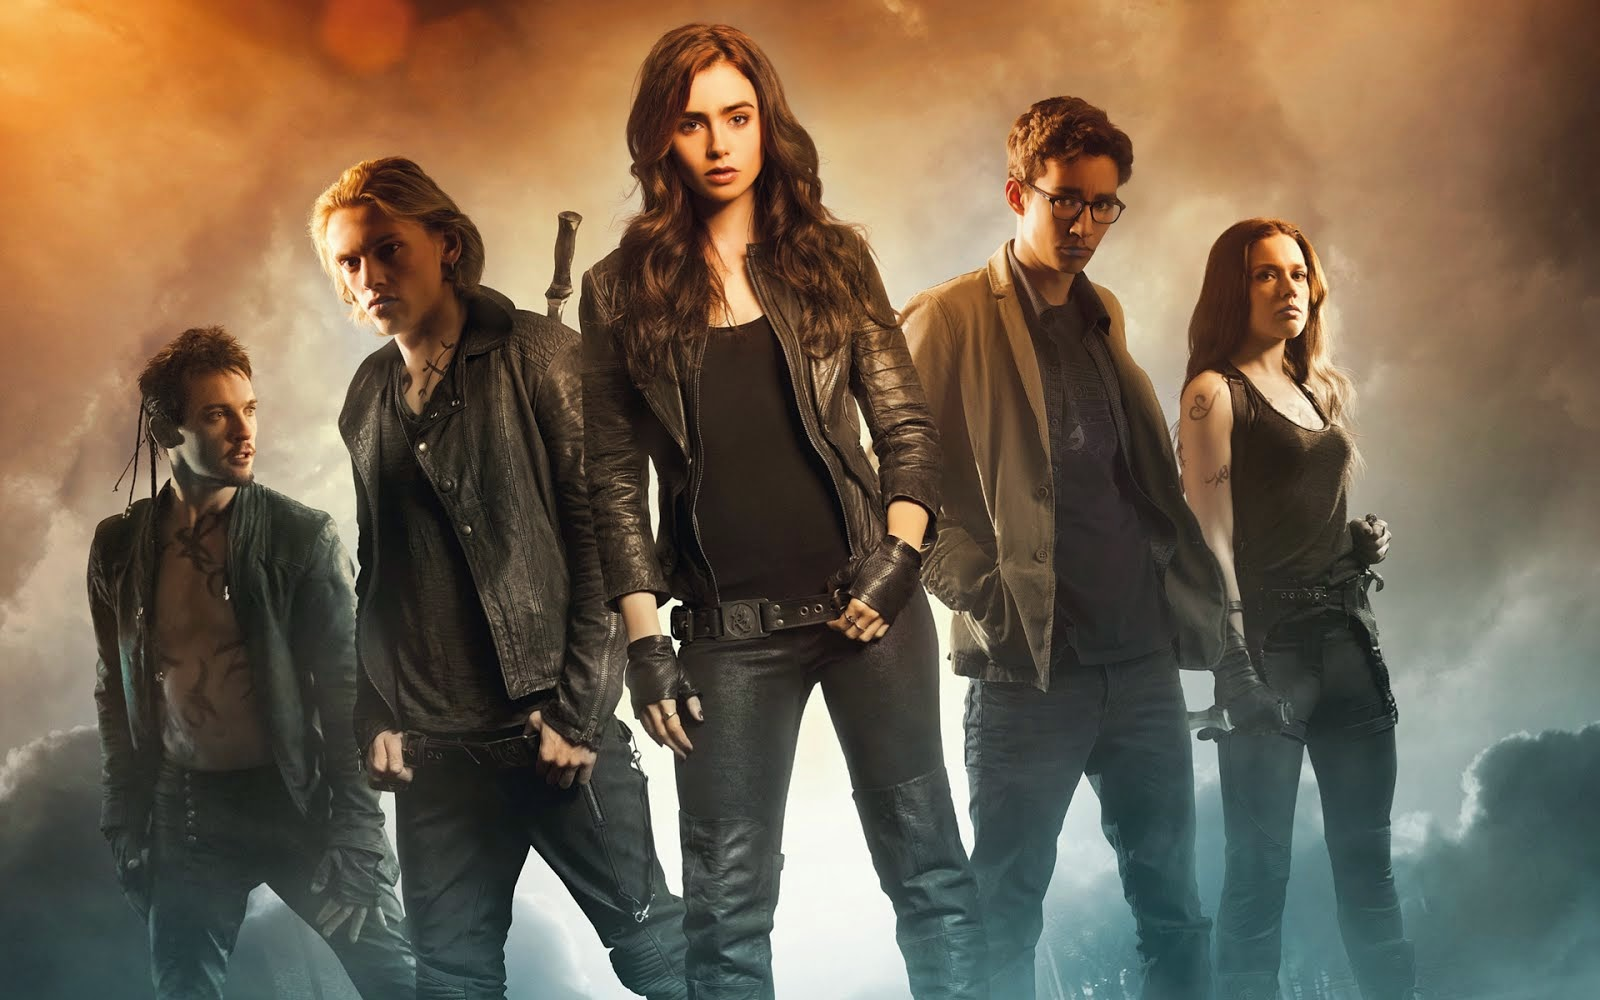 Shadowhunters City of Bones, the Movie